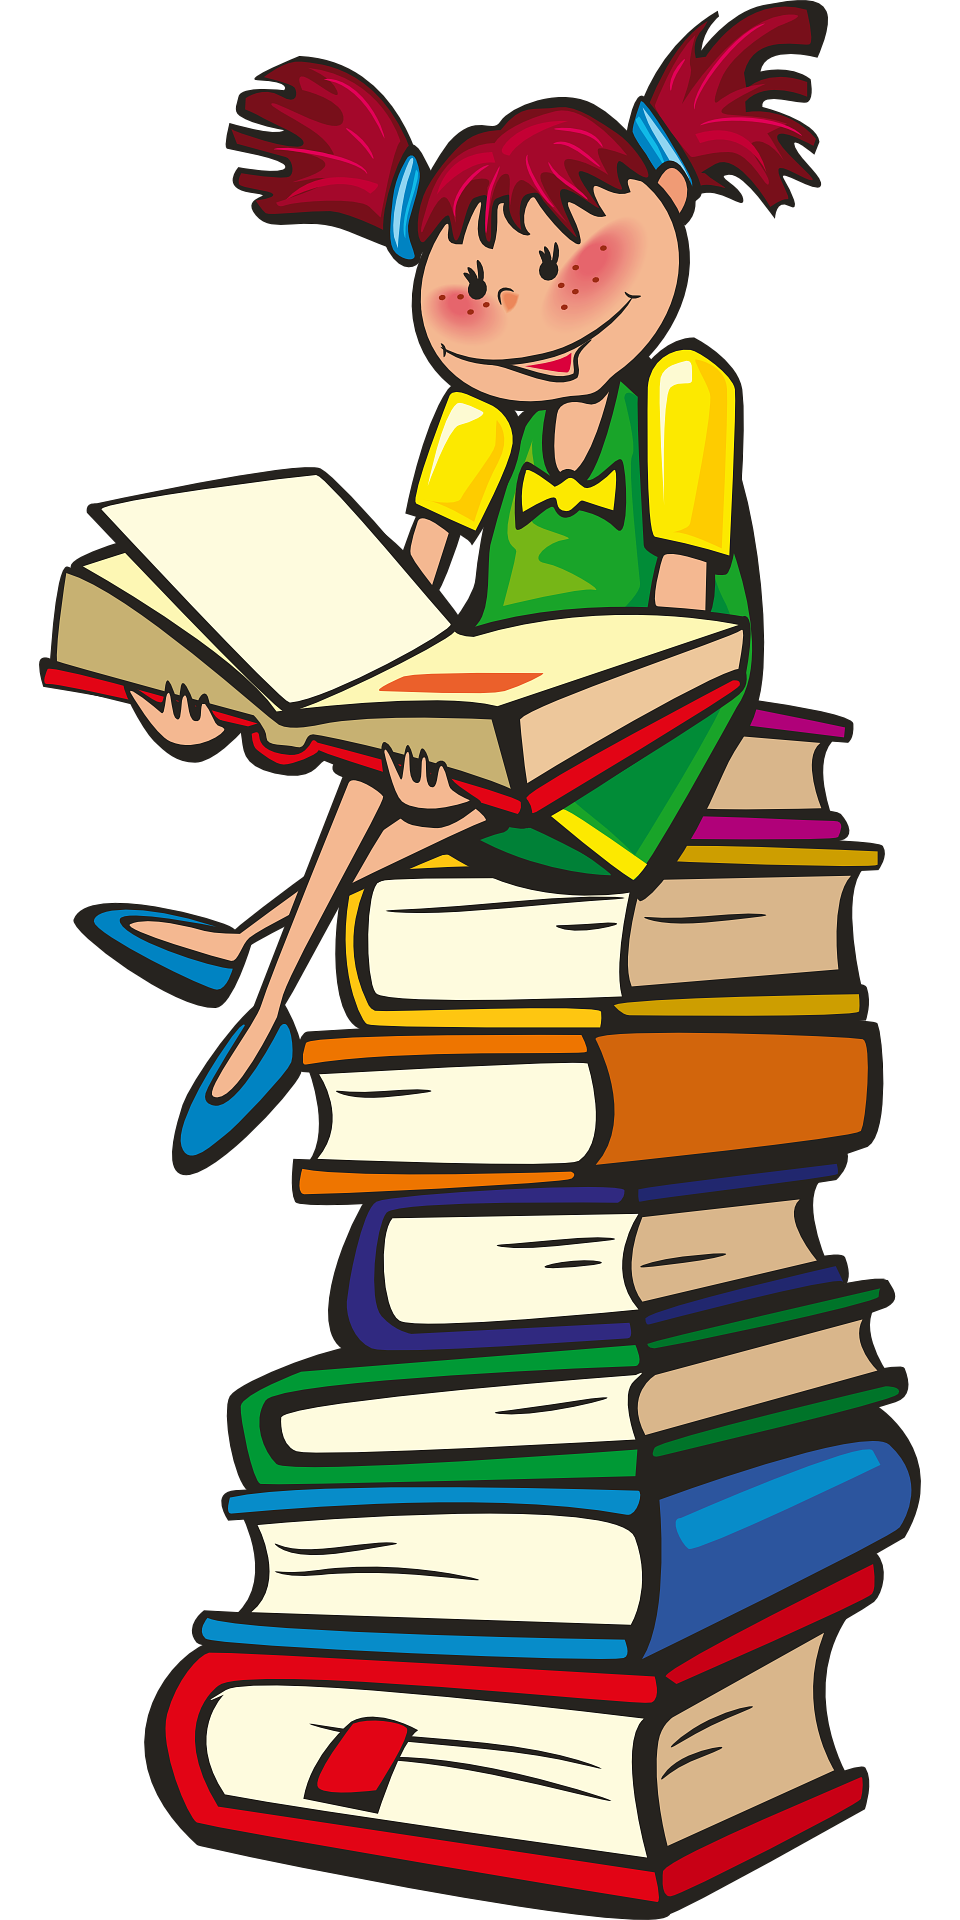 Cartoon girl with books